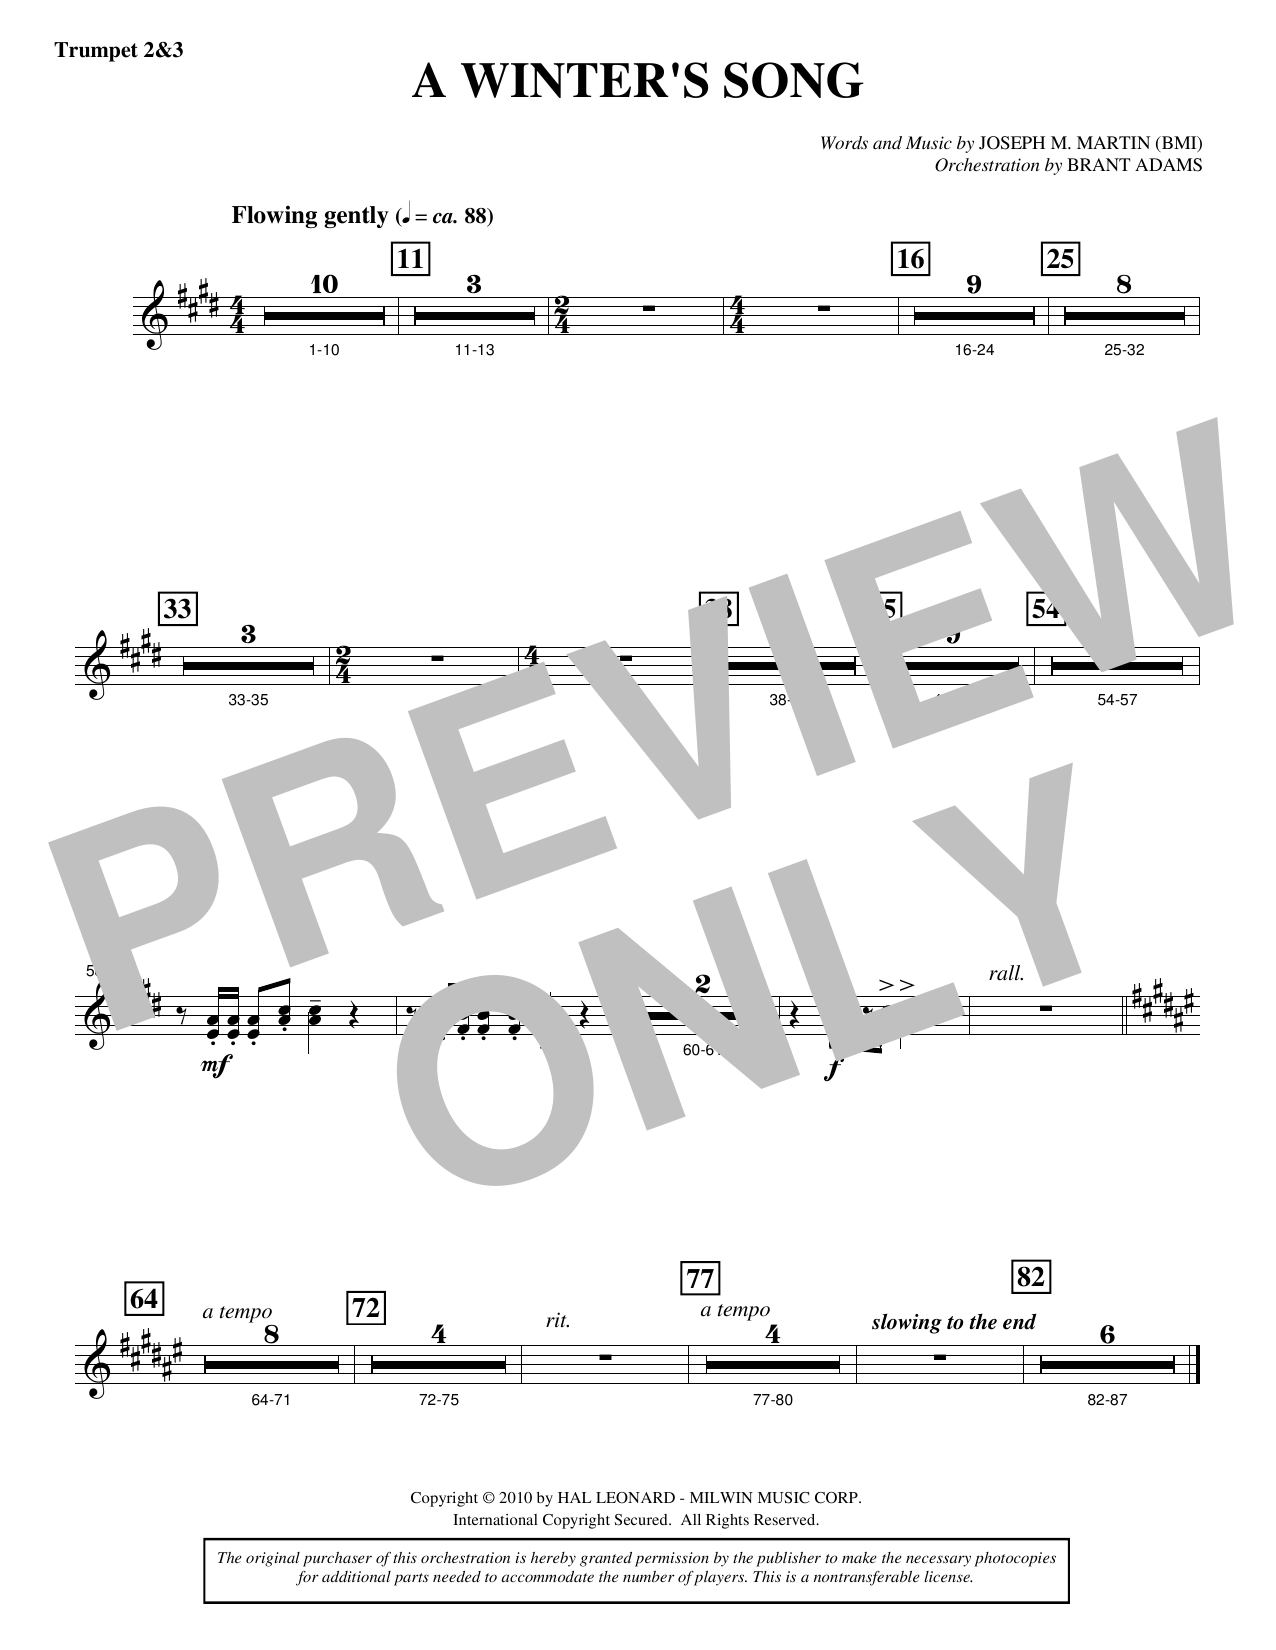 Joseph M. Martin A Winter's Song (from Winter's Grace) - Bb Trumpet 2,3 sheet music notes printable PDF score